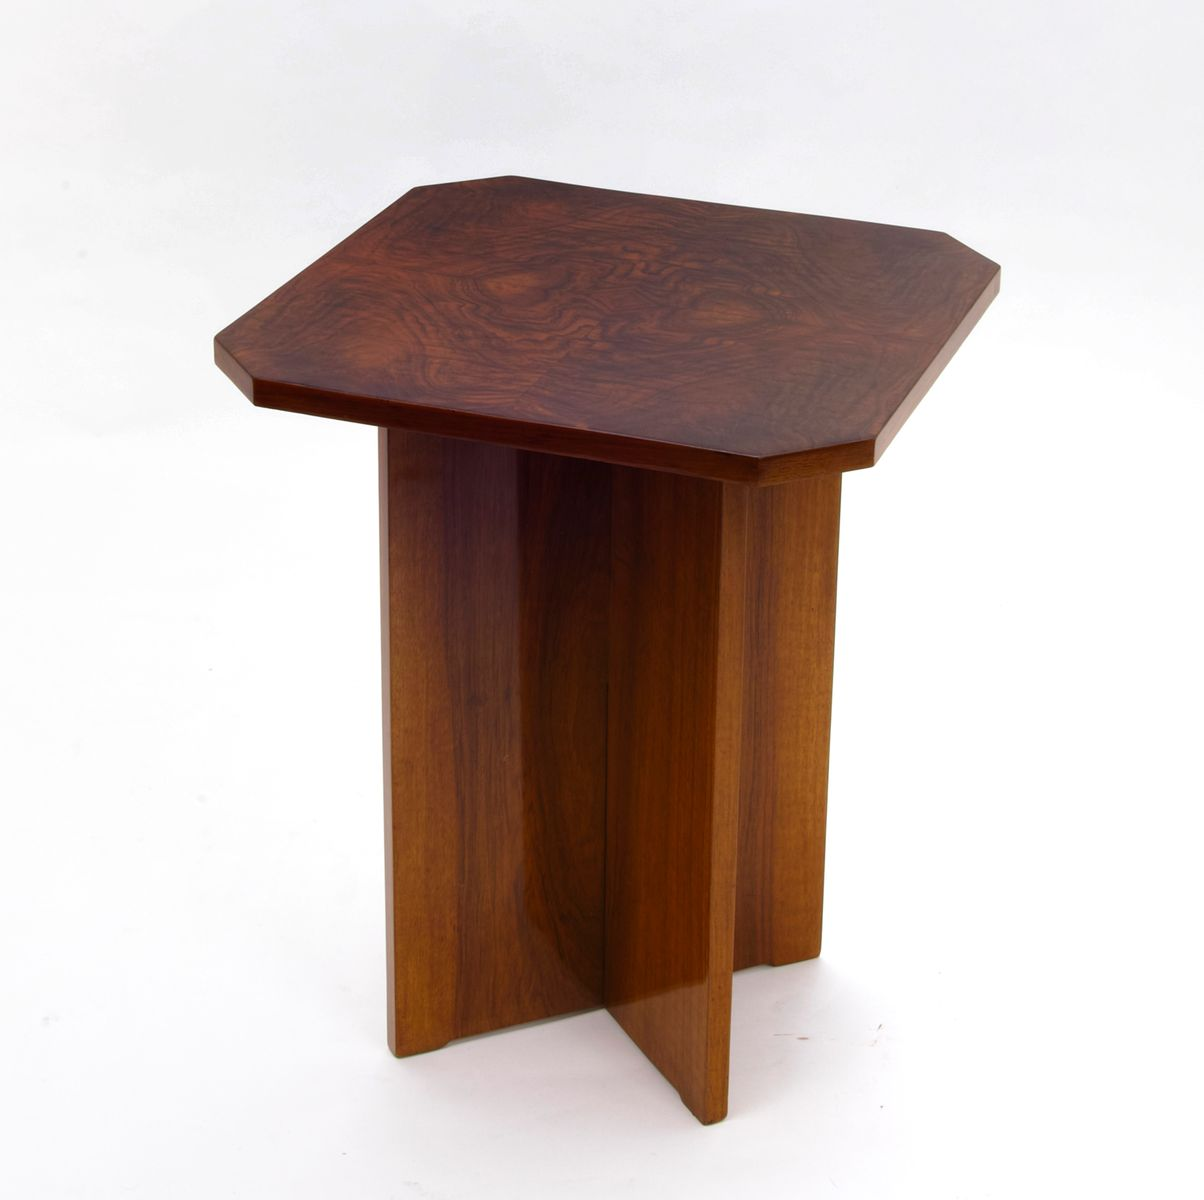 Art deco side table with x base 1930s for sale at pamono for Side table base